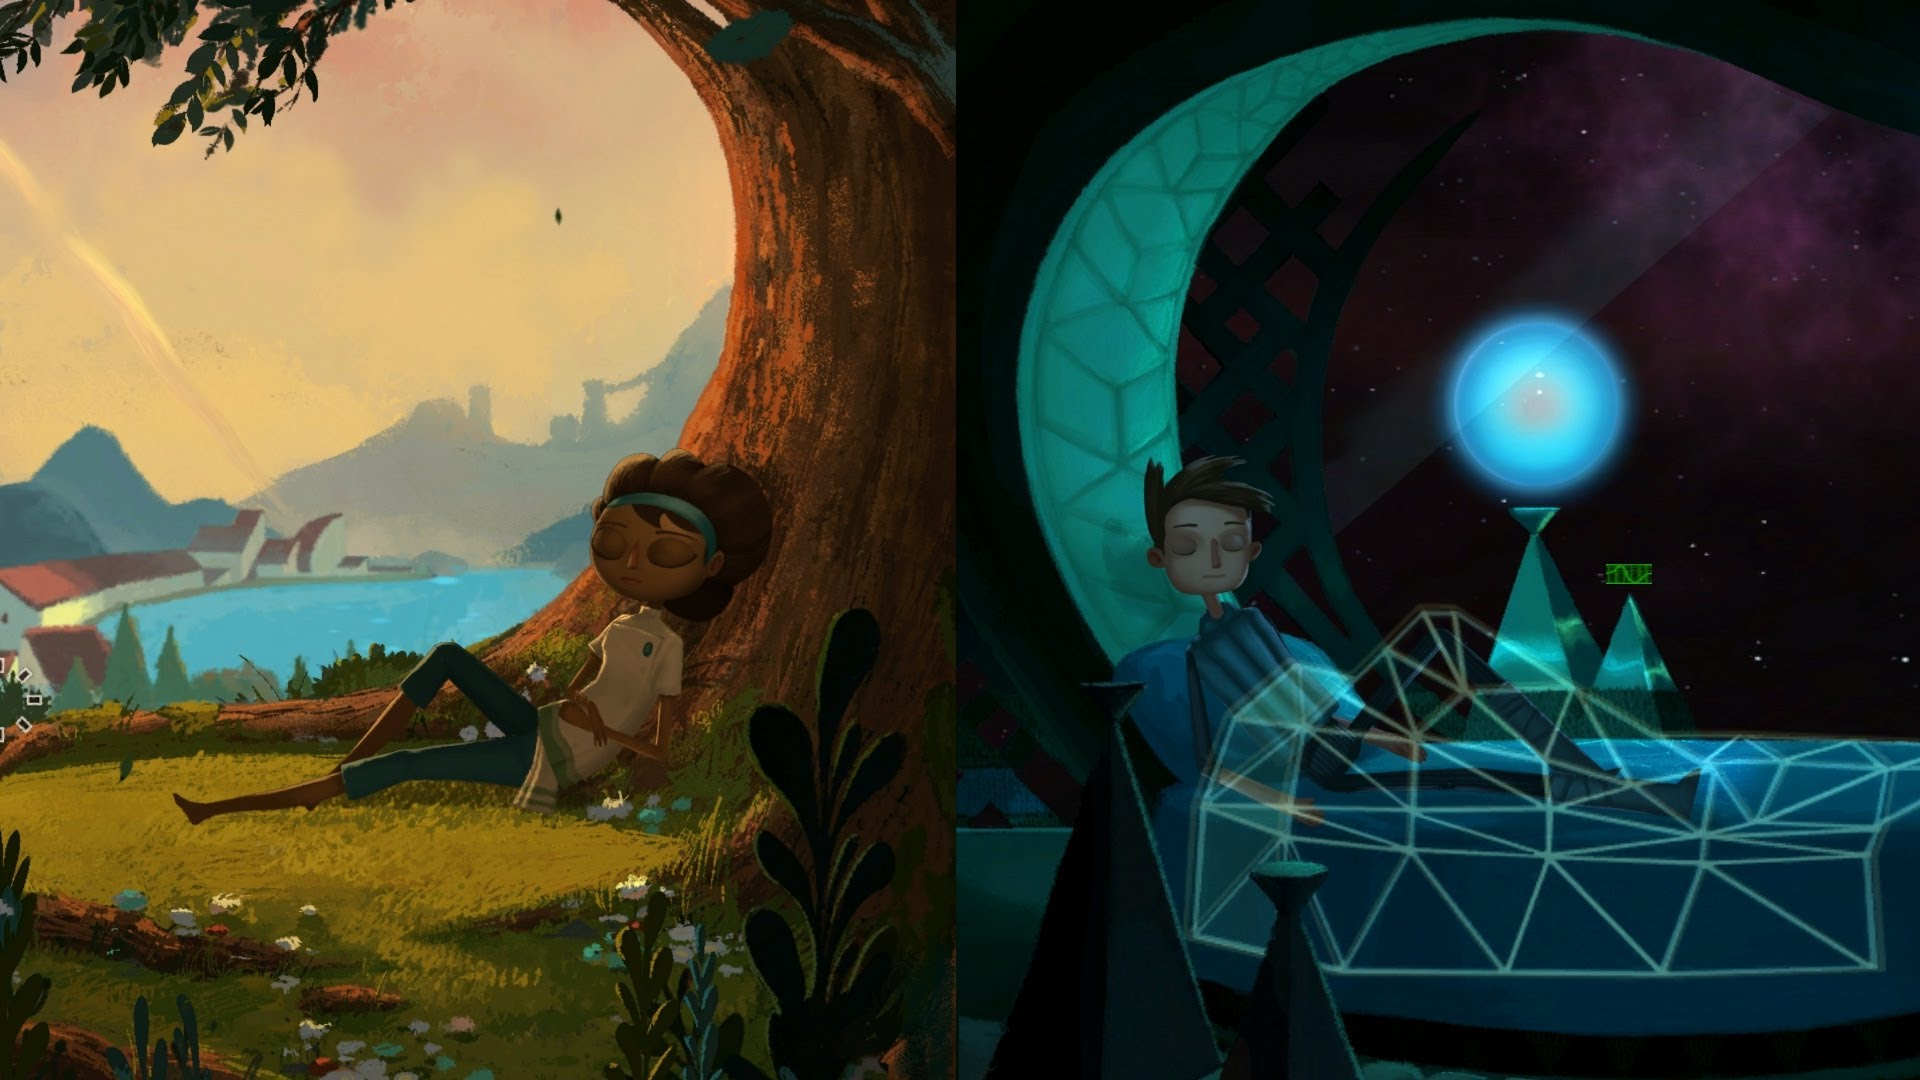 5 MAGNIFICENT VIDEO GAMES WITH DISTINCTIVE ARTSTYLE | The Game Freak Show